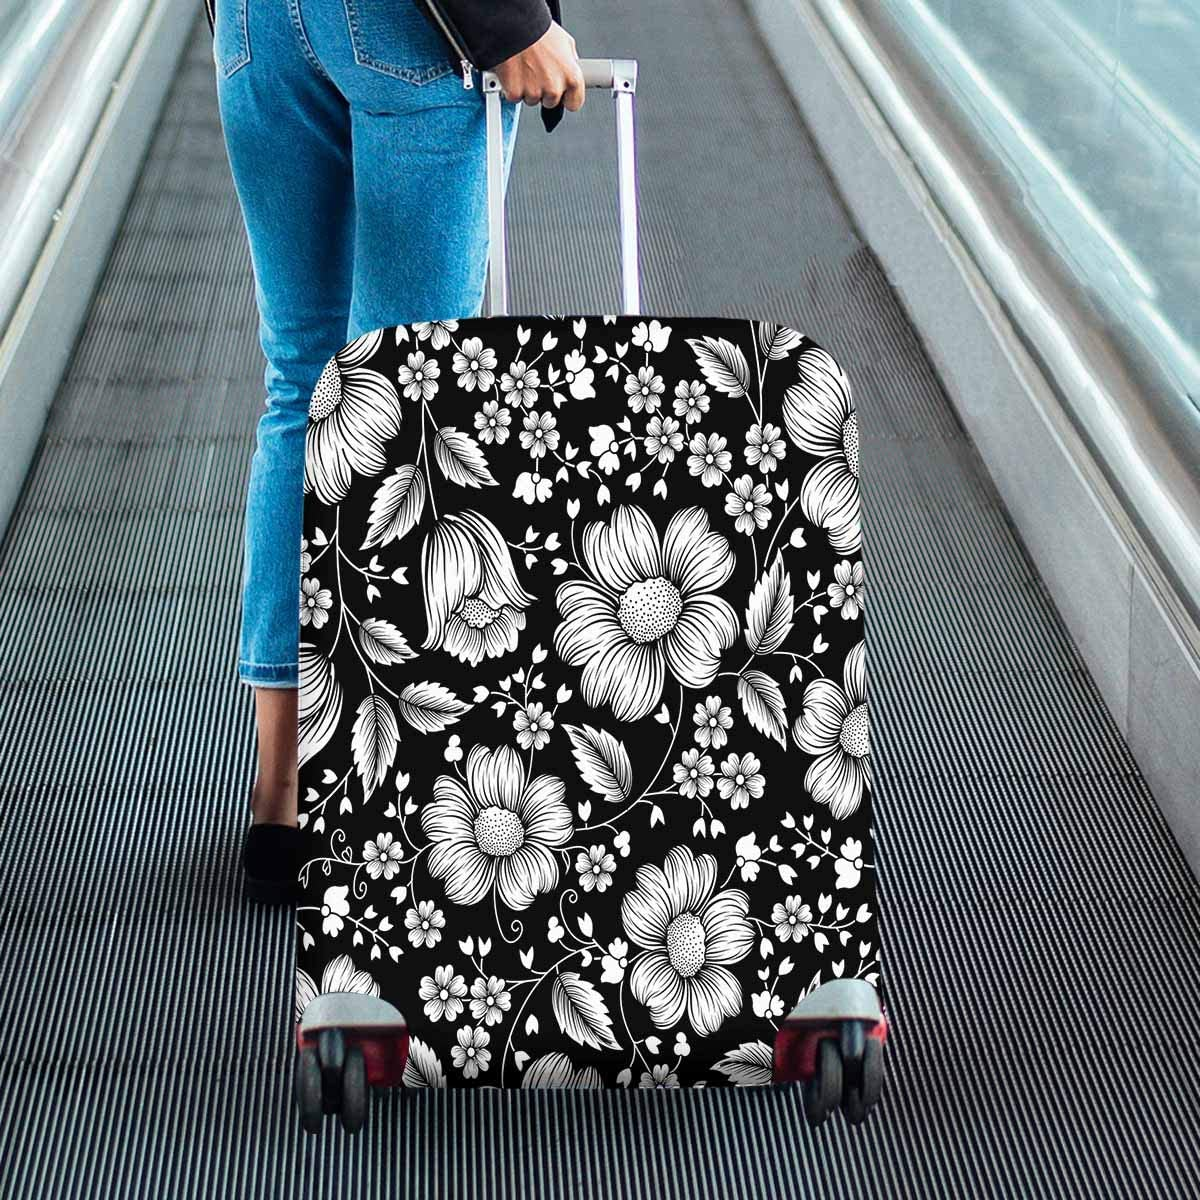 INTERESTPRINT Travel Luggage Cover Suitcase Protector Fit 18-28 Inch Black and White Floral Pattern